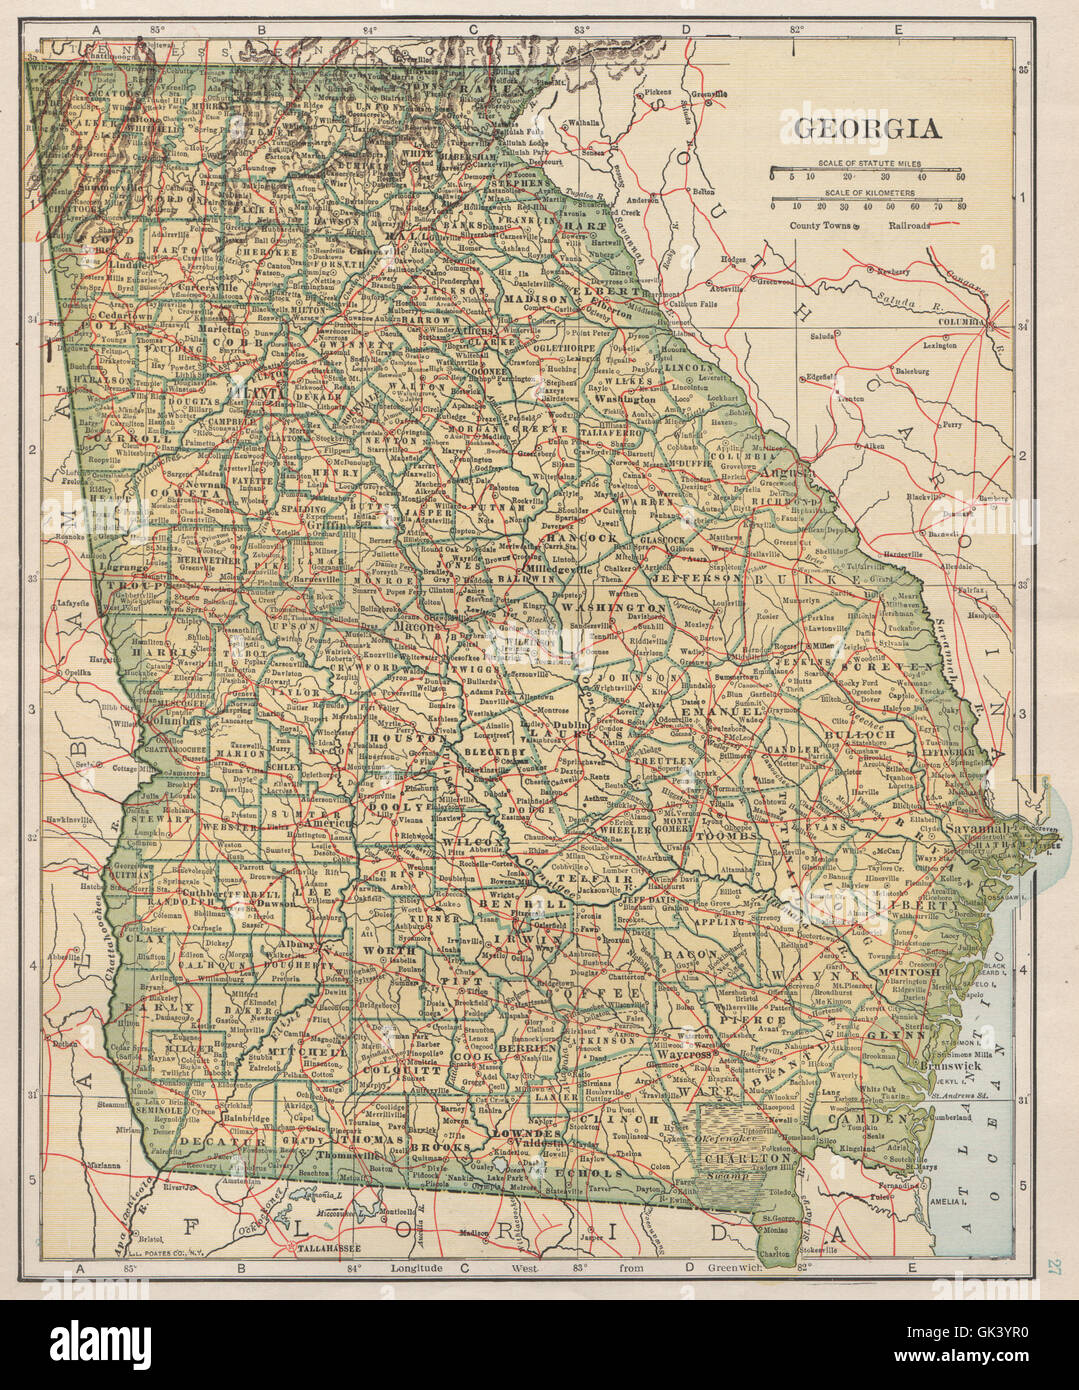 Georgia state map showing railroads. POATES, 1925 Stock Photo ...